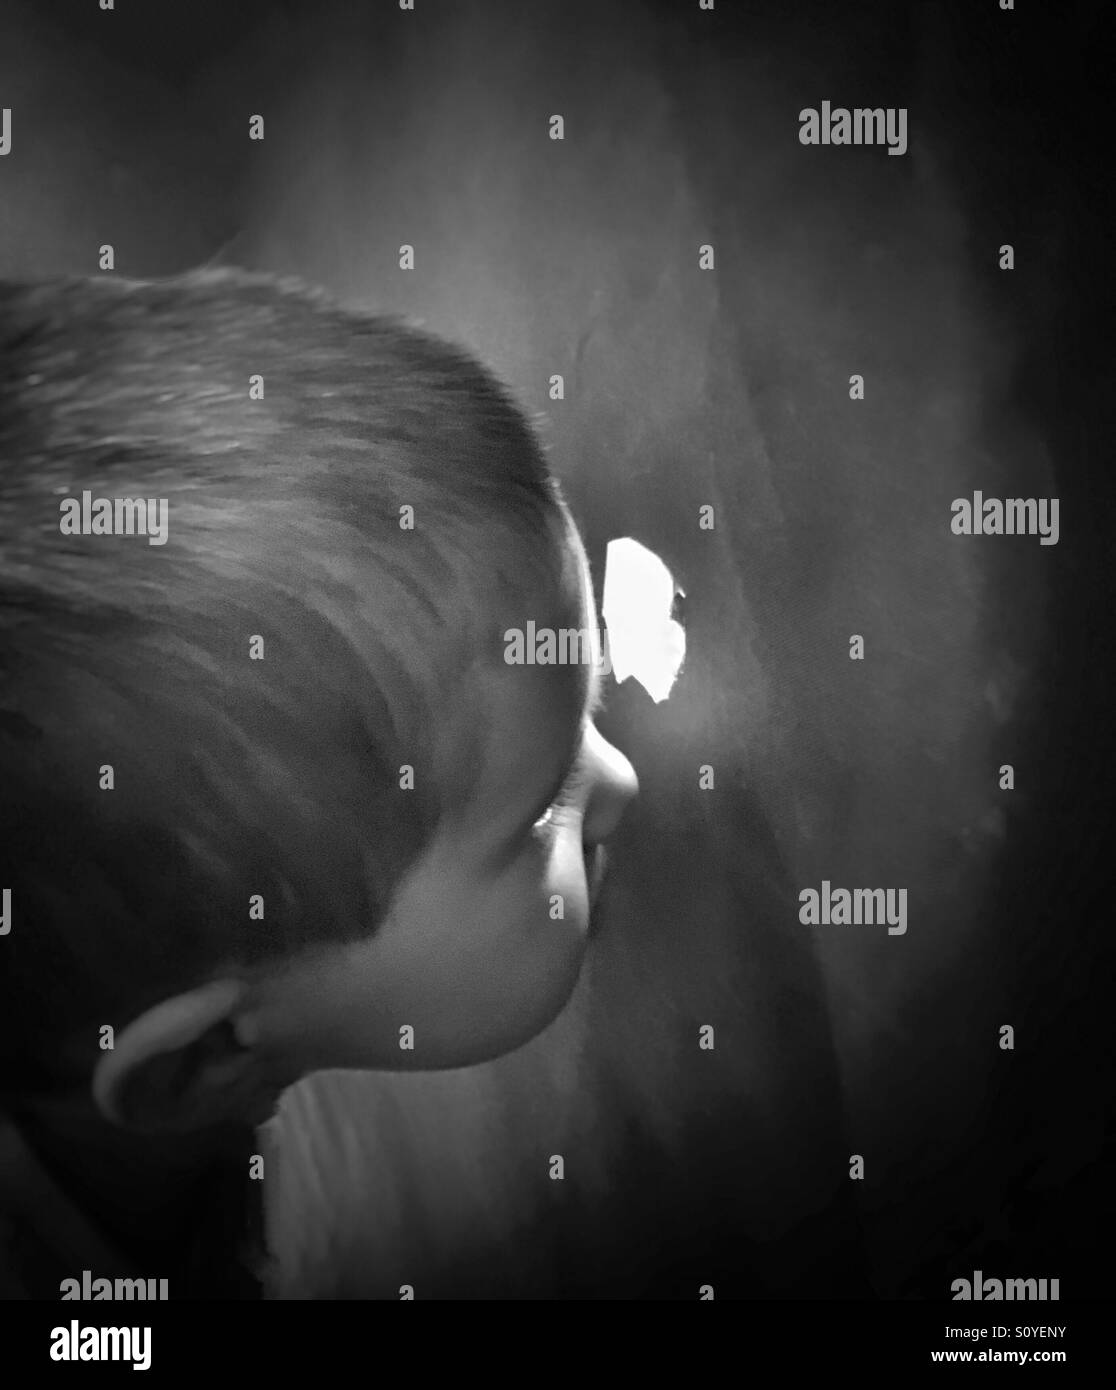 Peeking through the hole - Stock Image